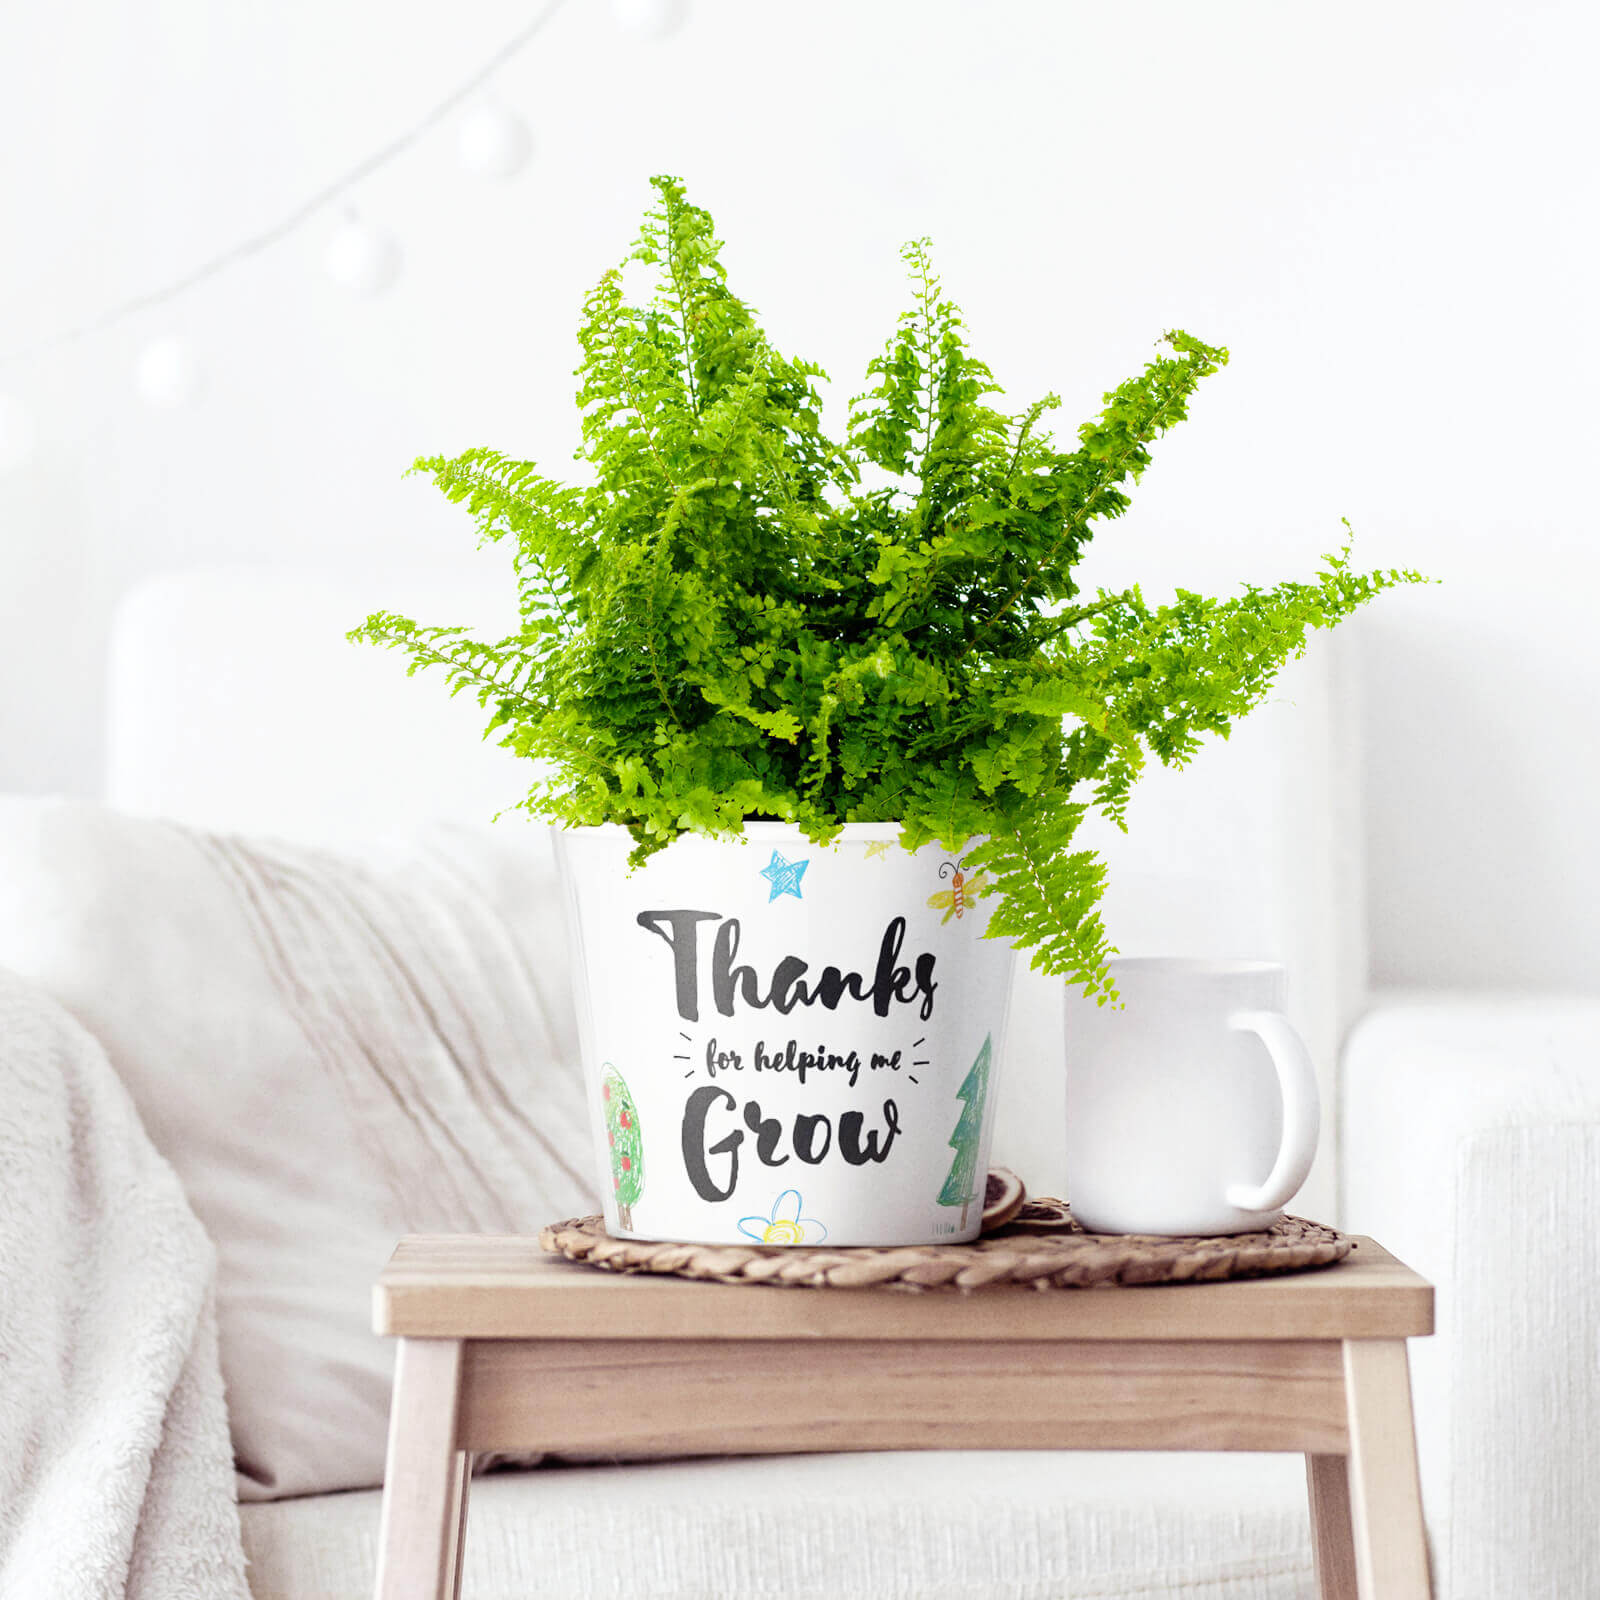 A personalised Flowerpot Gift Thanks For Helping Me Grow